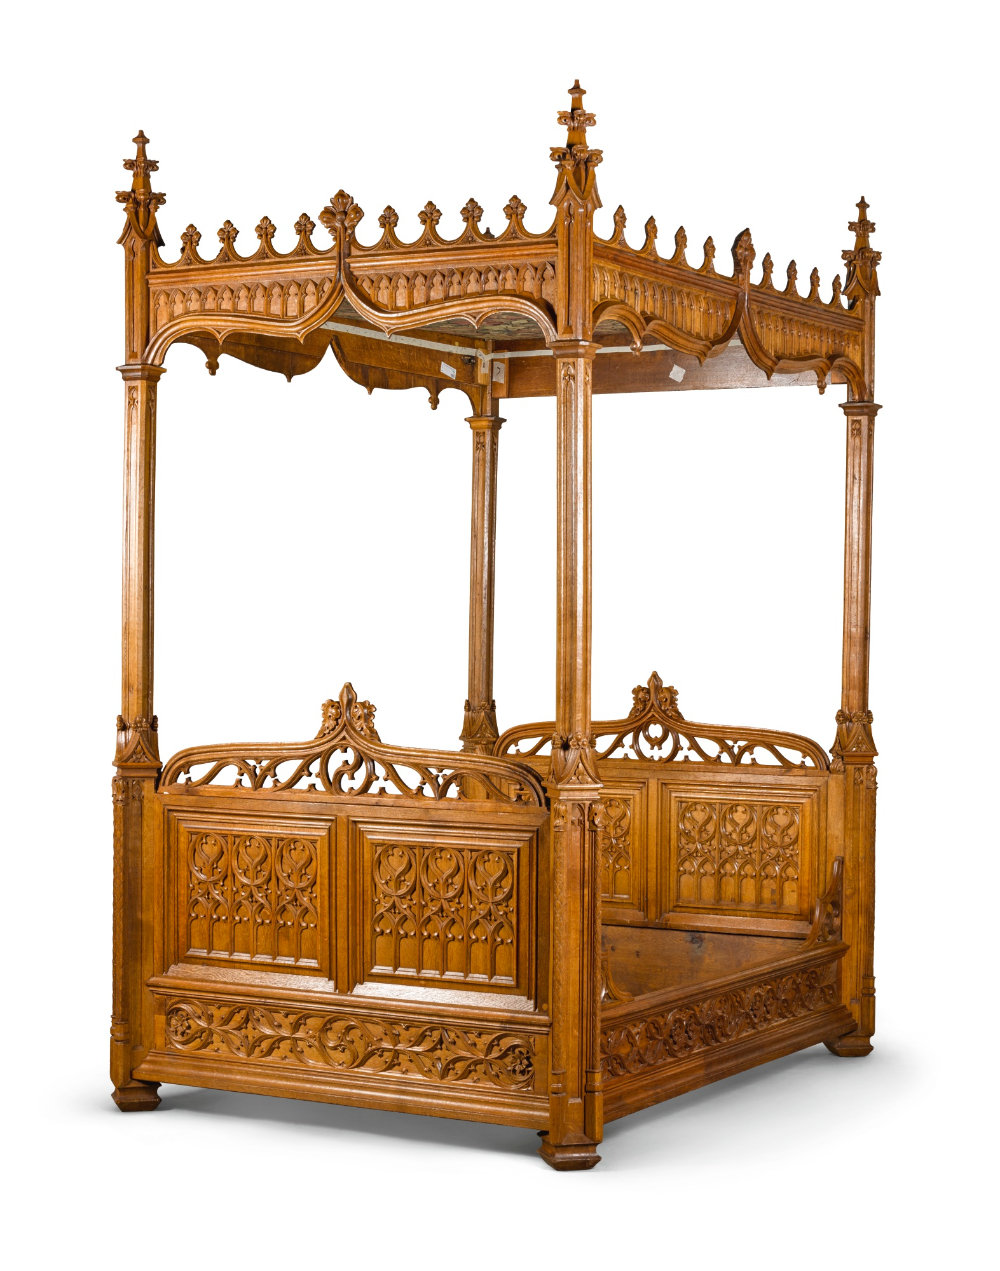 English Gothic bed Gothic bed, Gothic furniture, Gothic